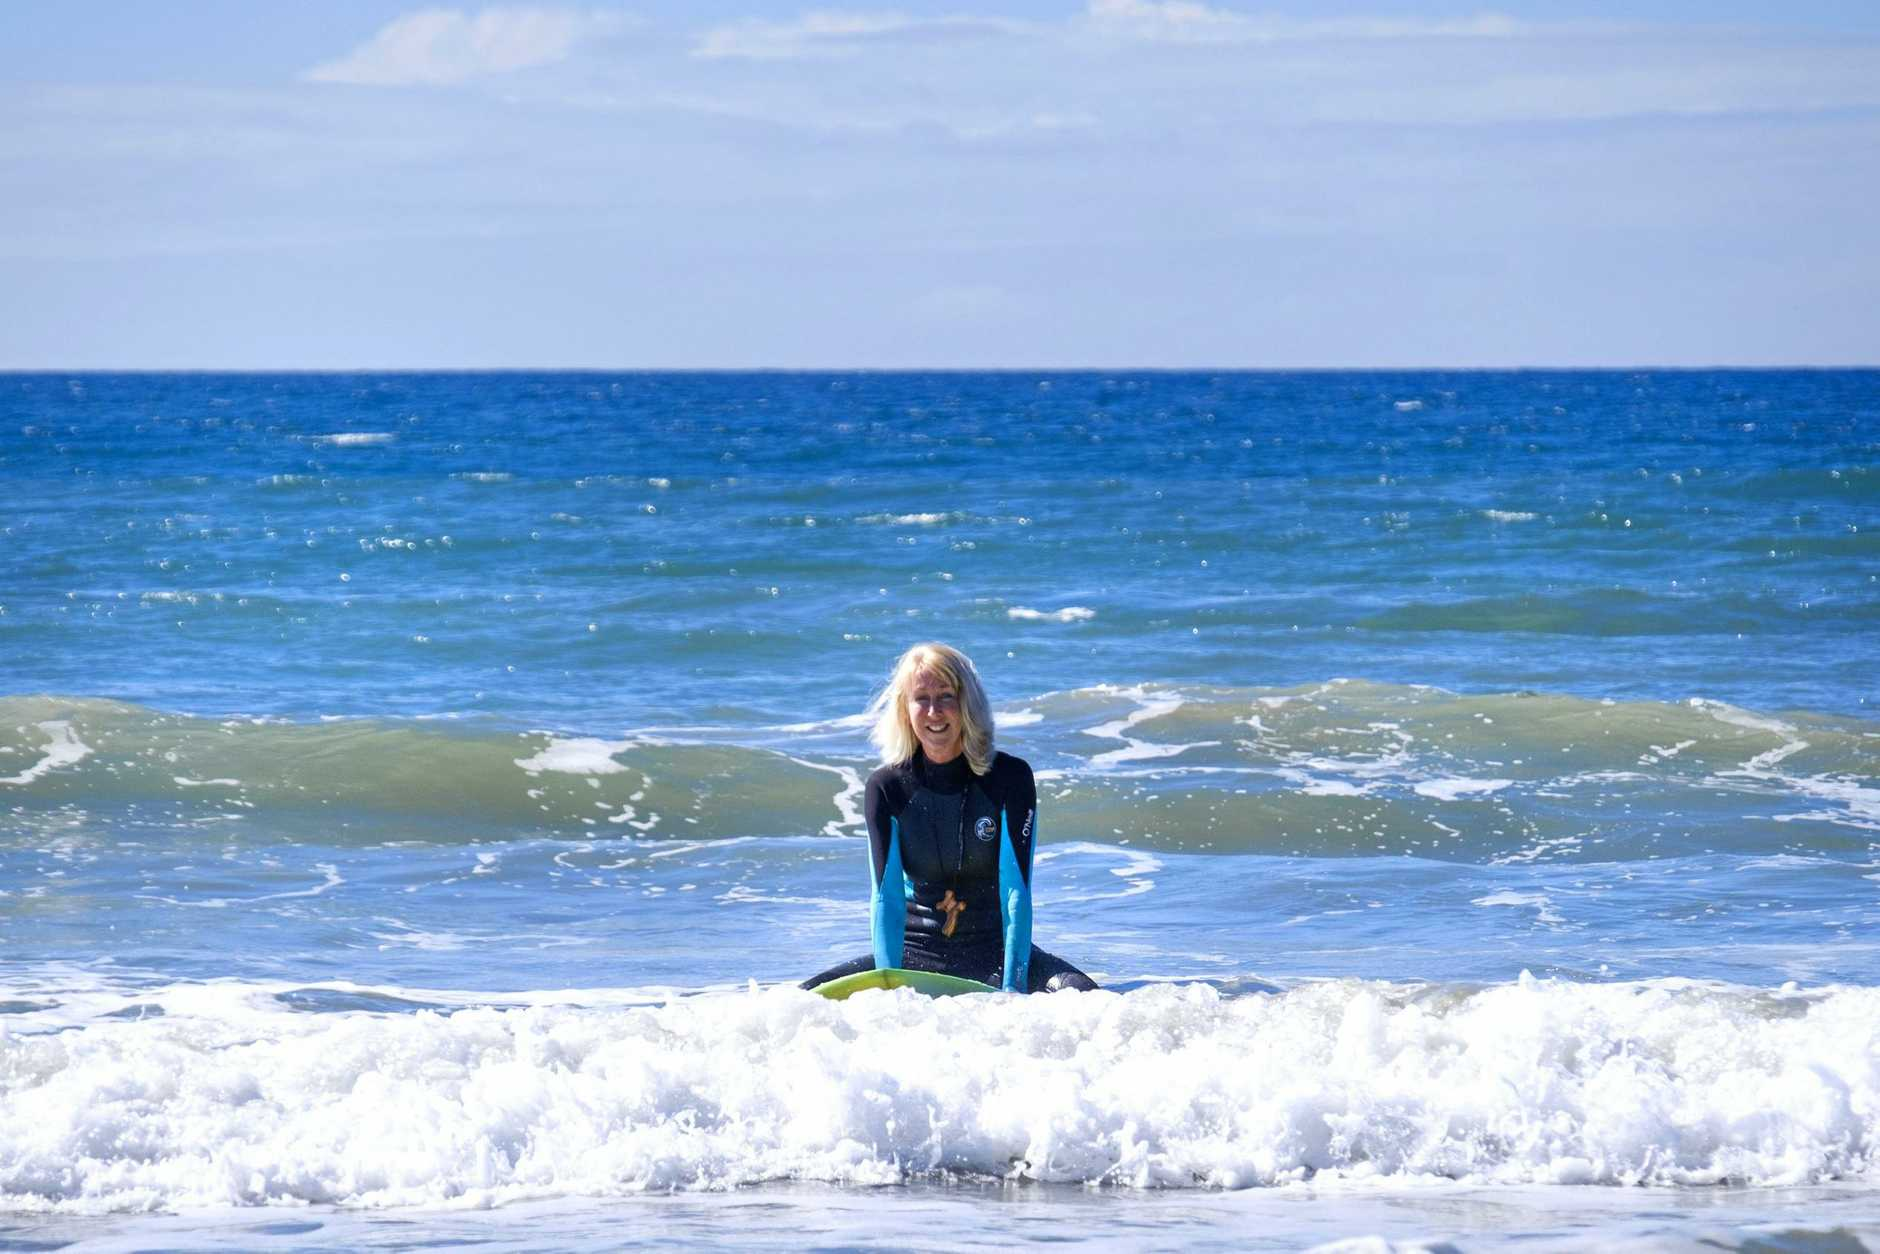 SURF'S UP: Reverend Jennifer Lynn and the Uniting Church staff are starting a surf service, and everyone's invited.